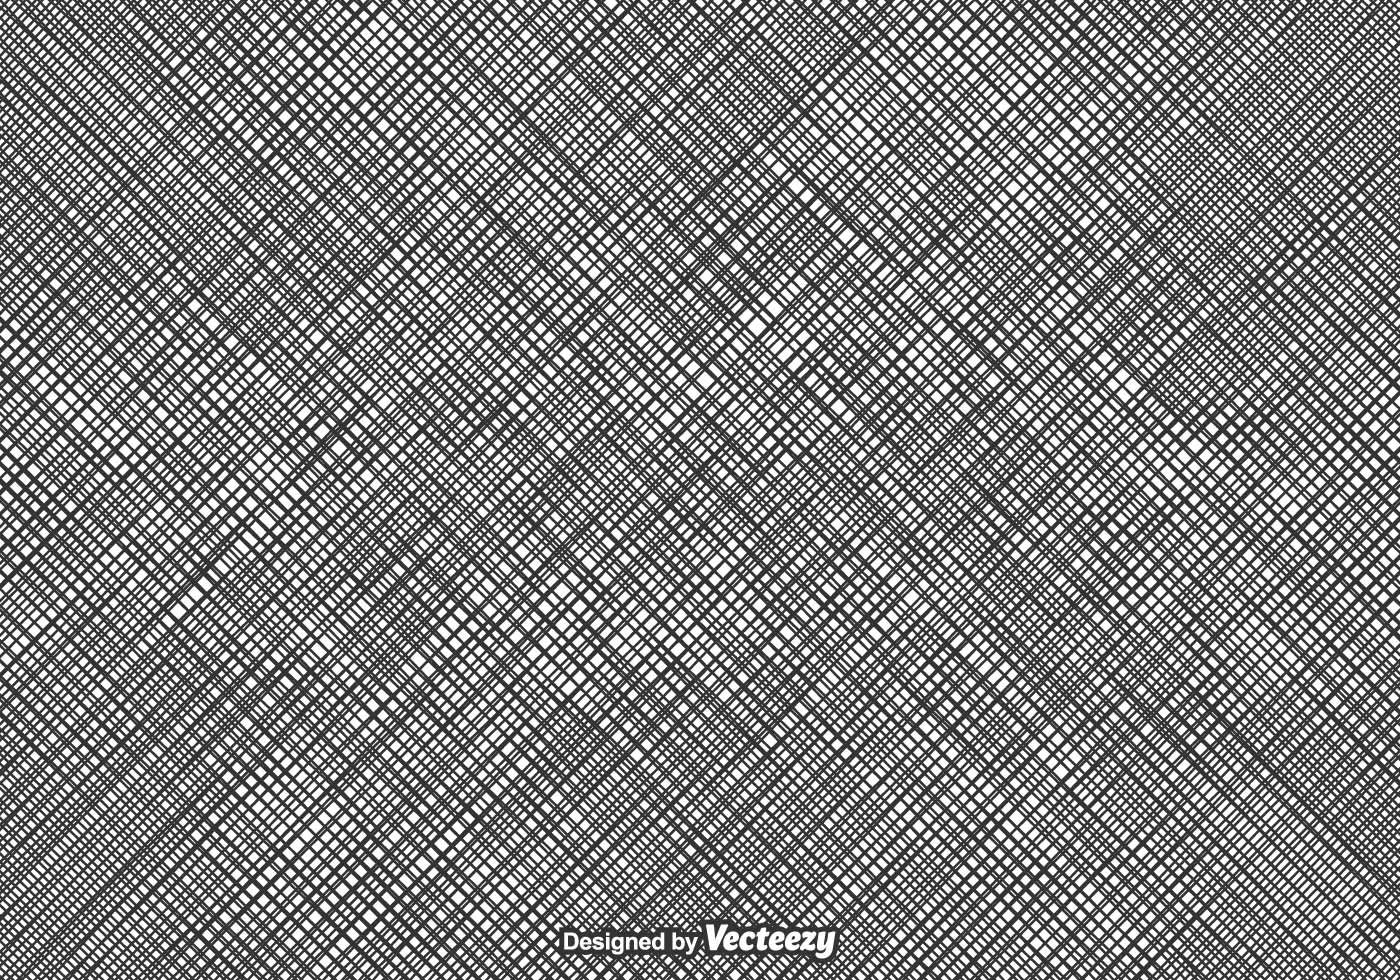 Line Texture Psd : Cross hatch patterned background psd free photoshop